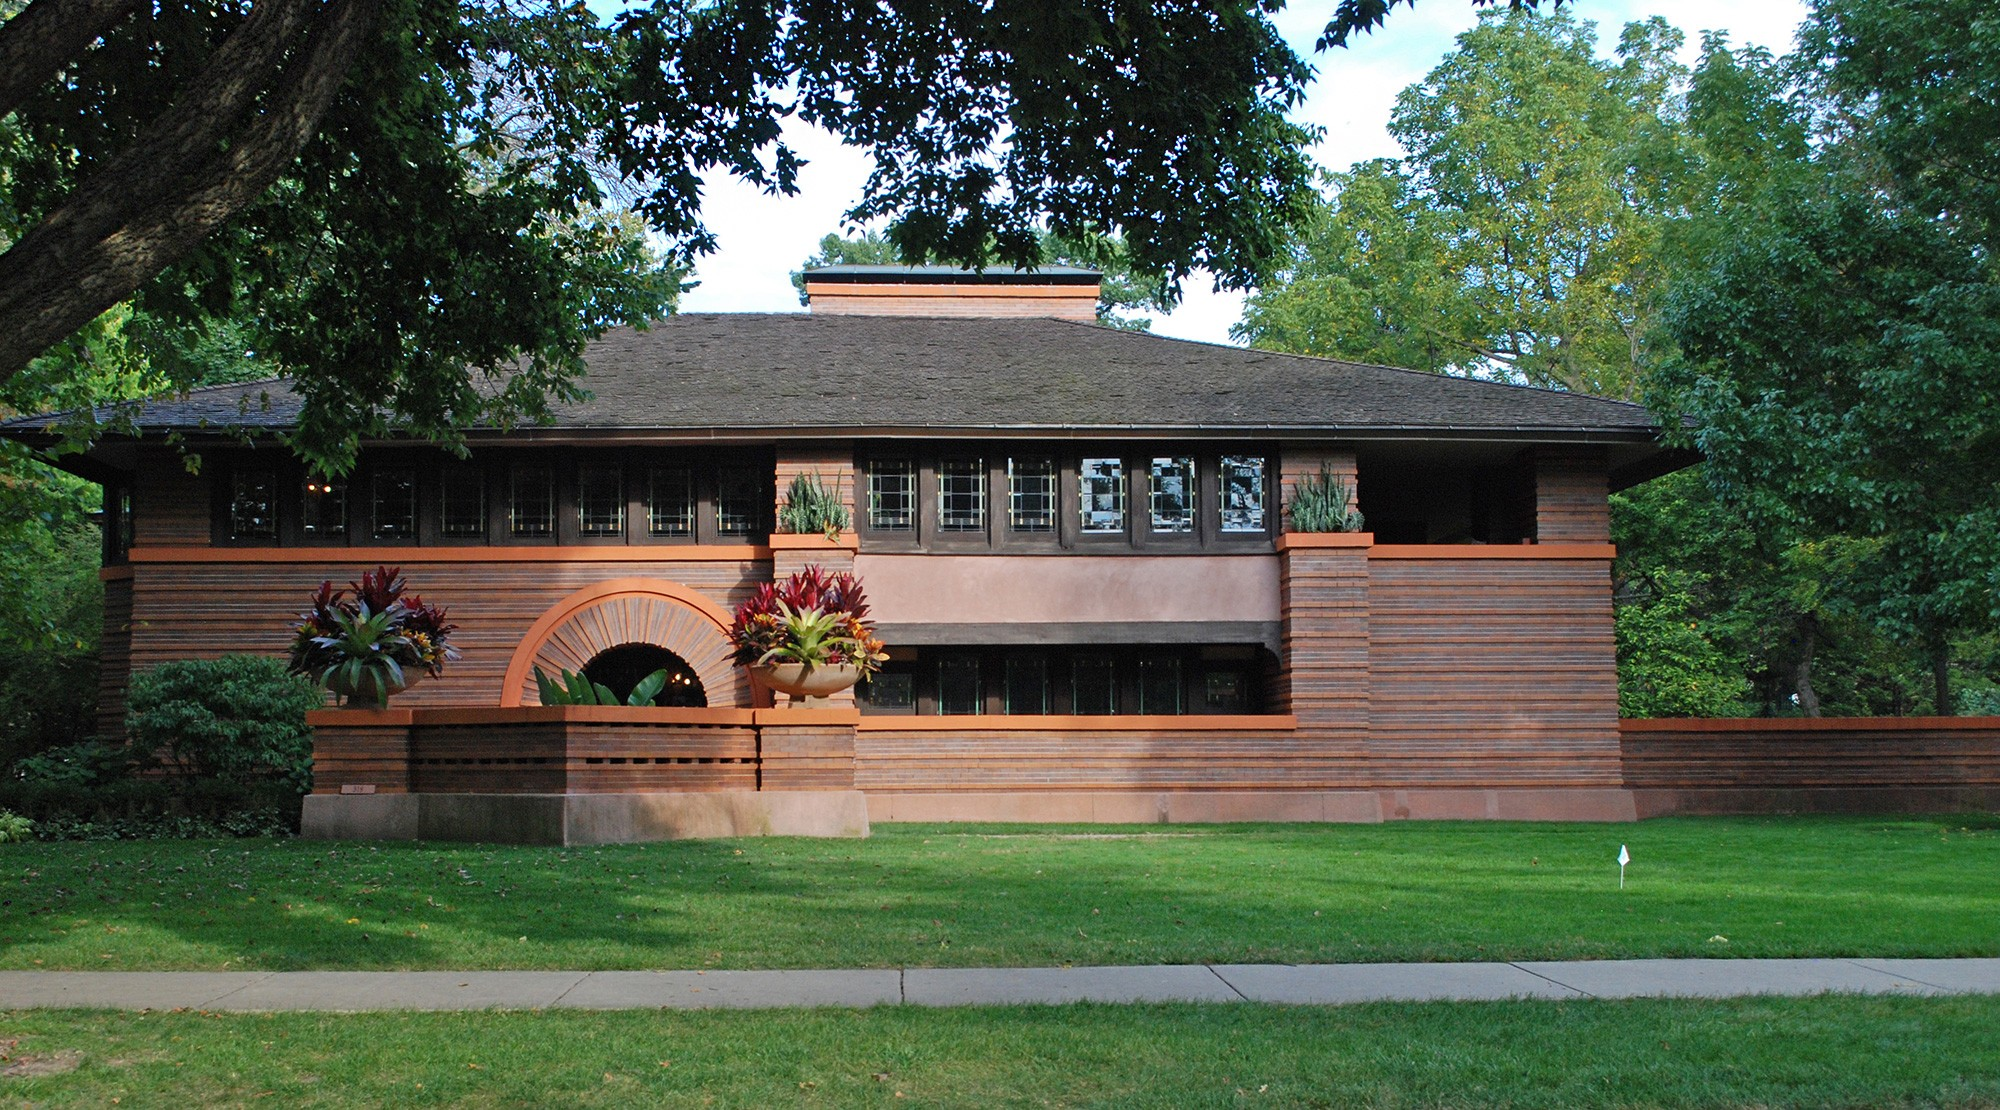 Frank lloyd wright by bus tours chicago architecture foundation caf - Images of home ...